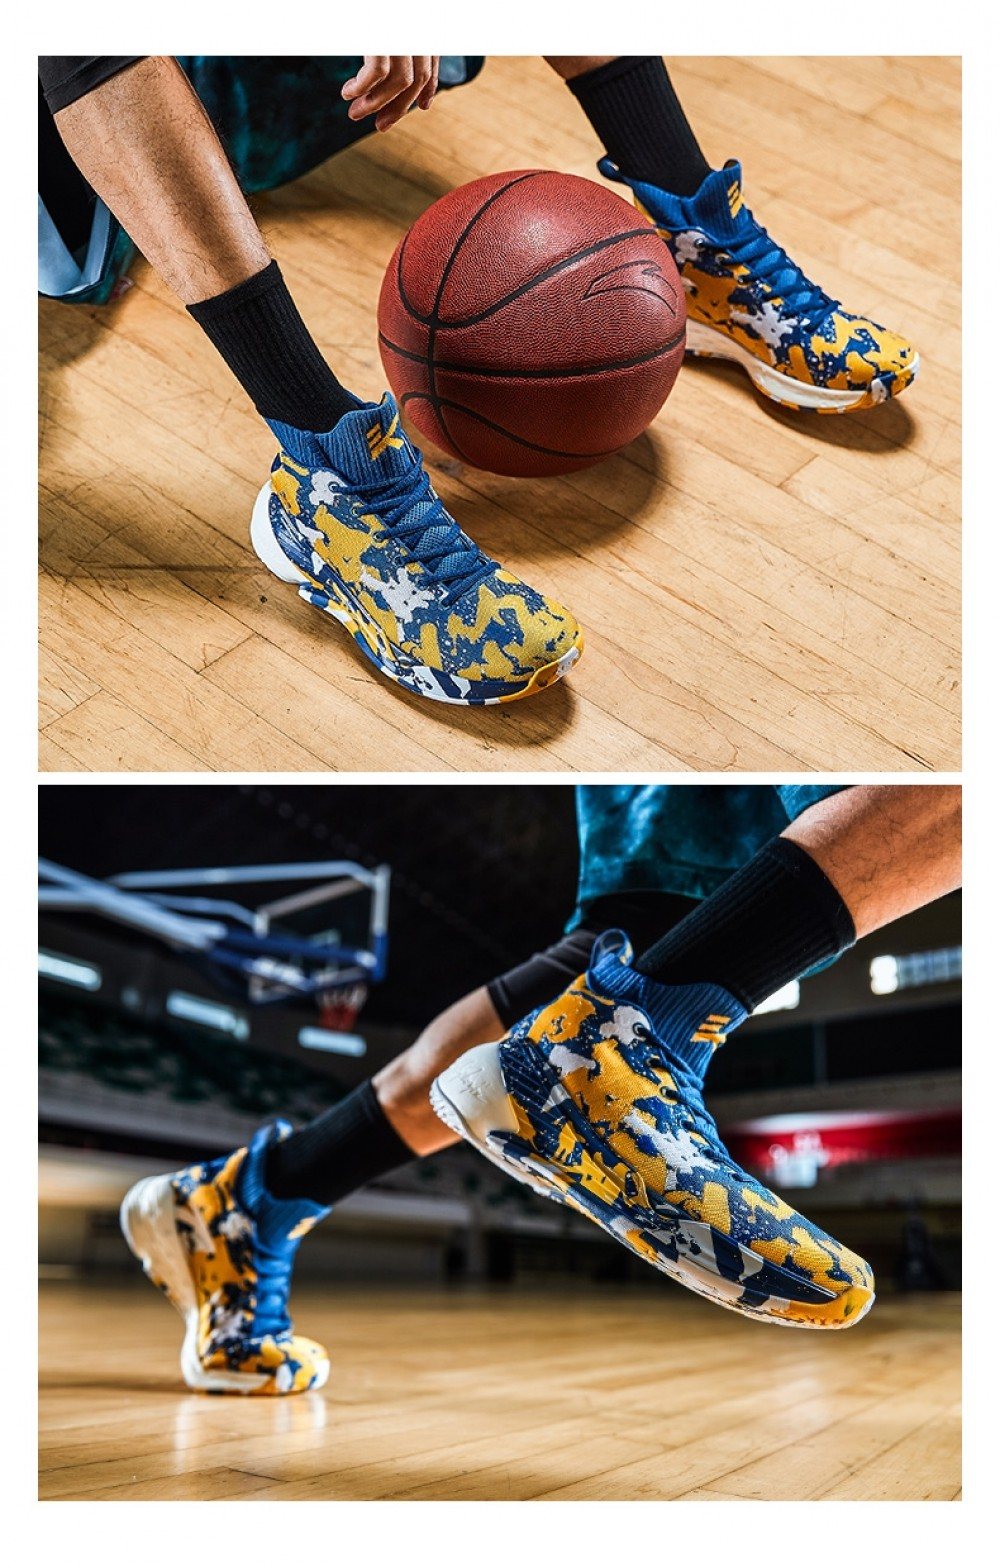 7a18791c614a Anta 2019 Spring New Klay Thompson KT4 Men s Basketball Shoes -  Blue Yellow White